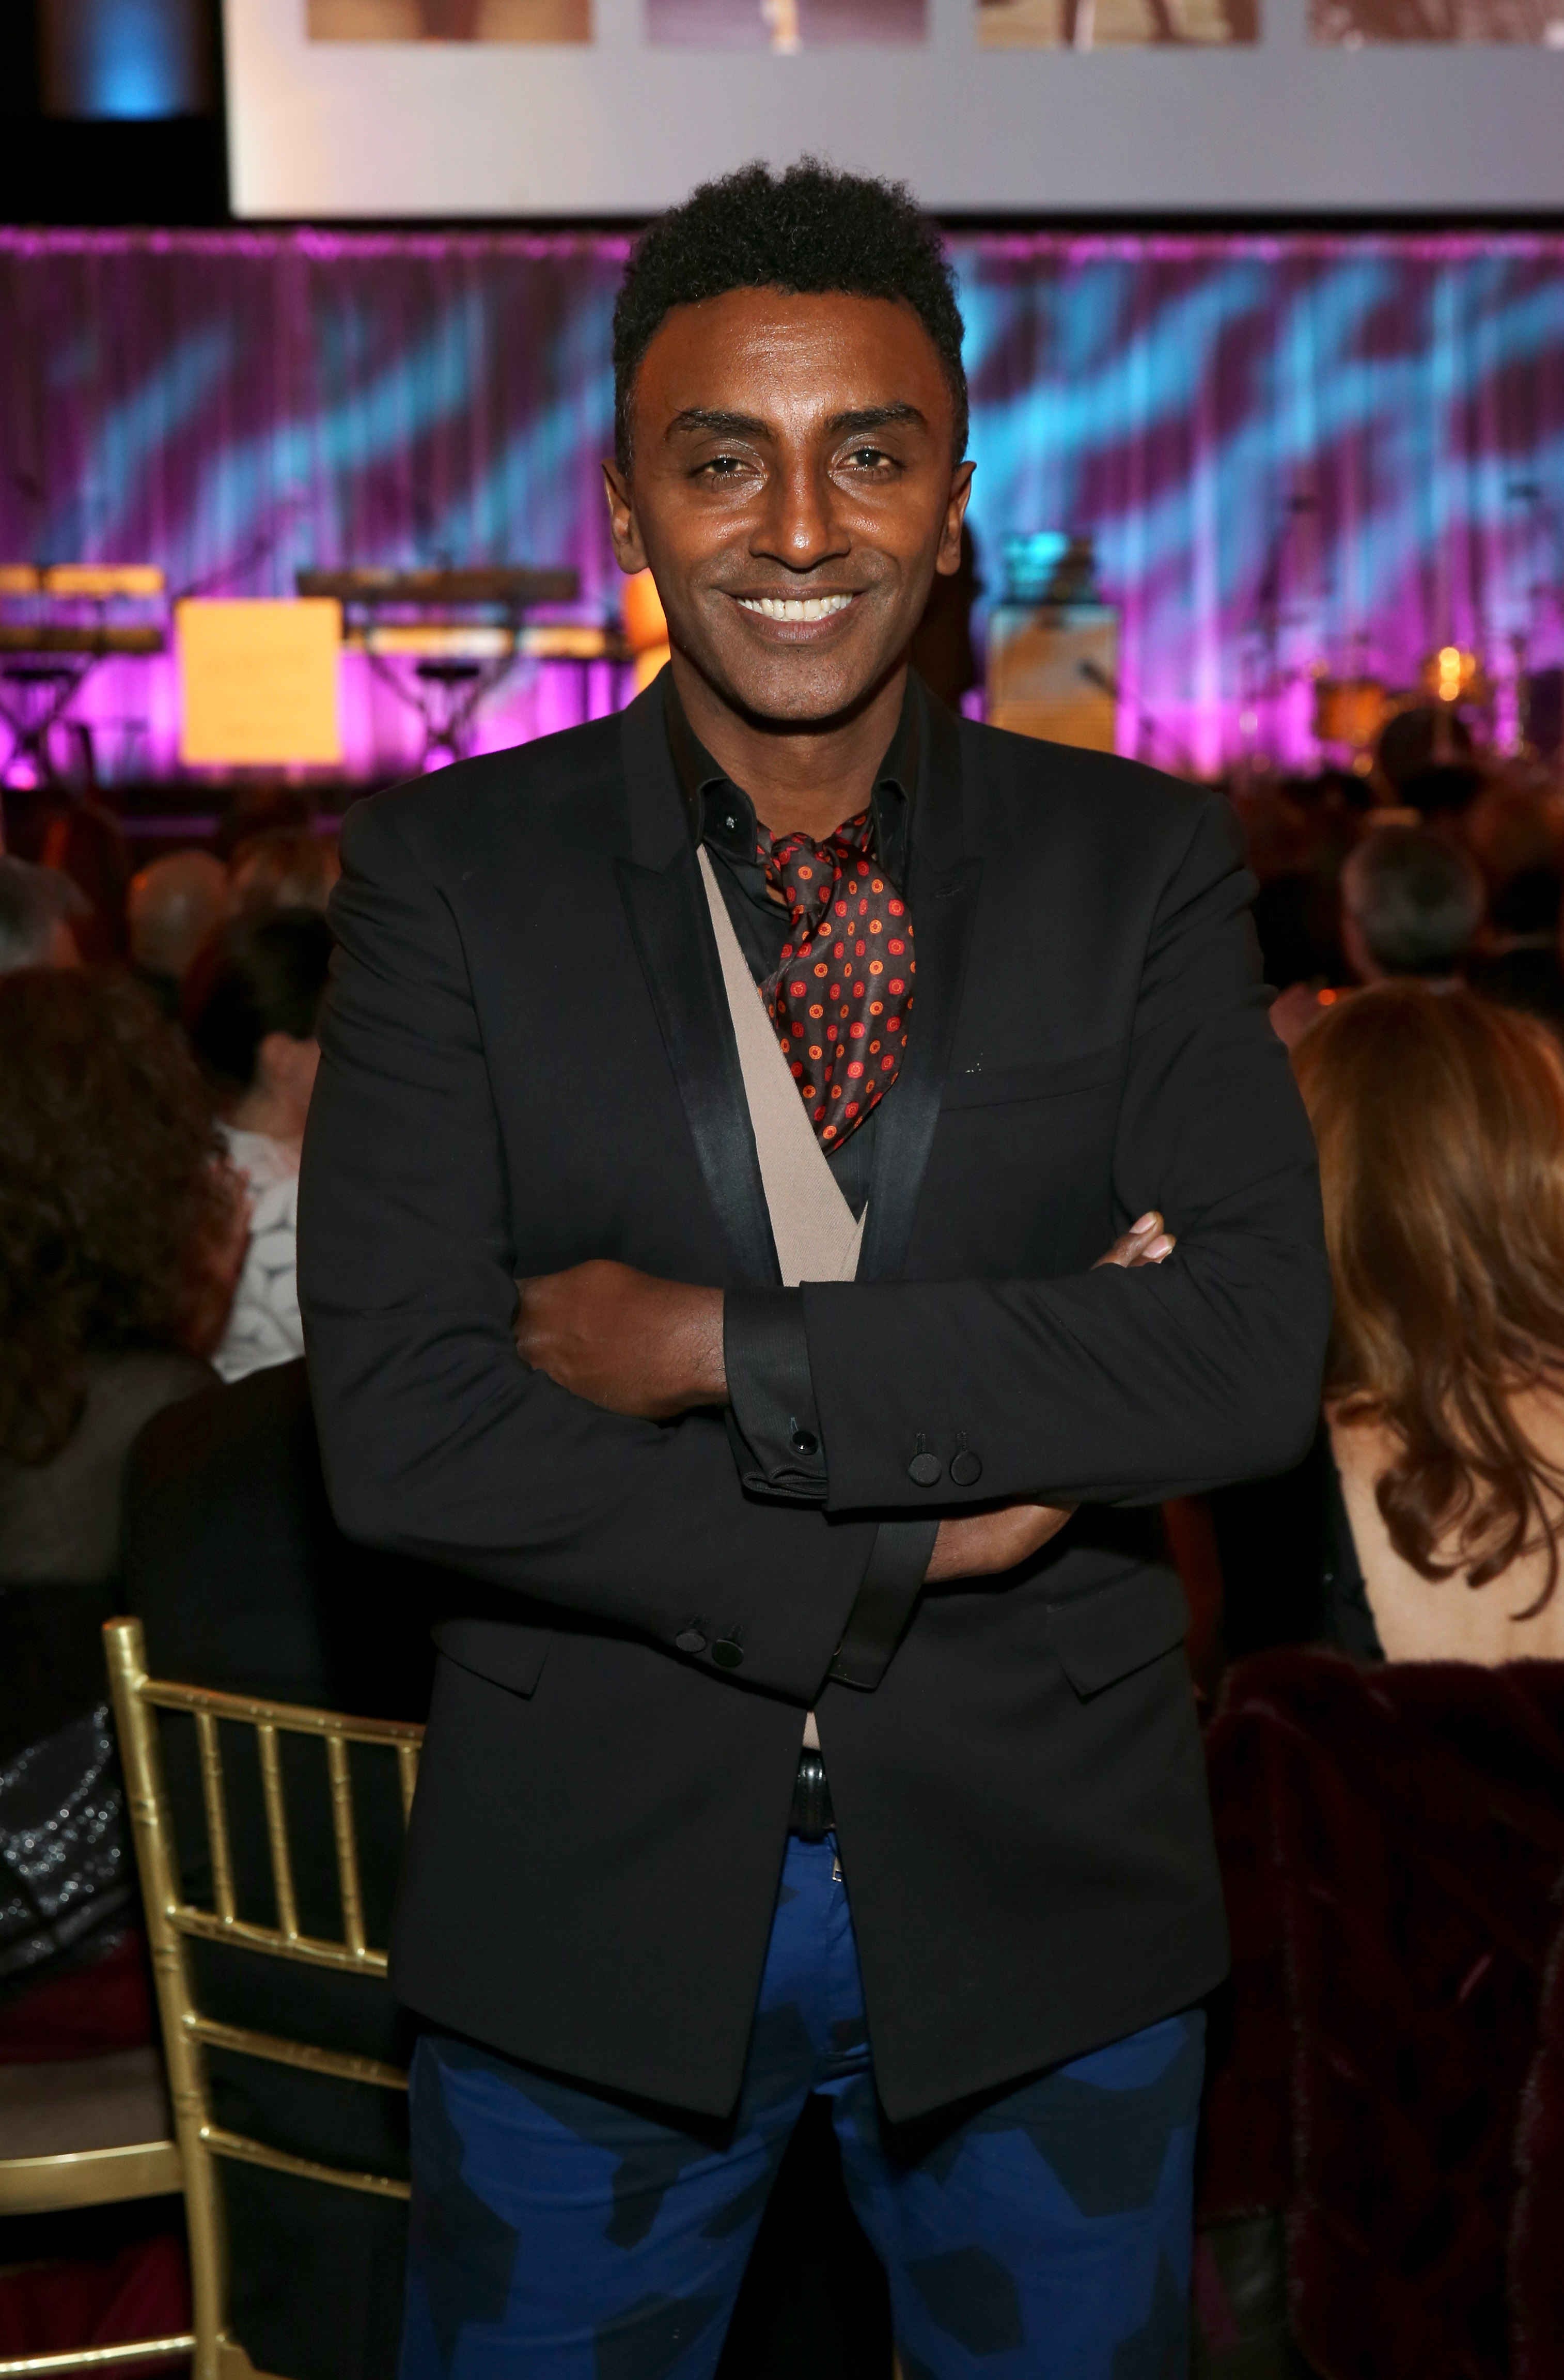 Members-Only Coffee Shop Launches in London; Marcus Samuelsson Opens Restaurant